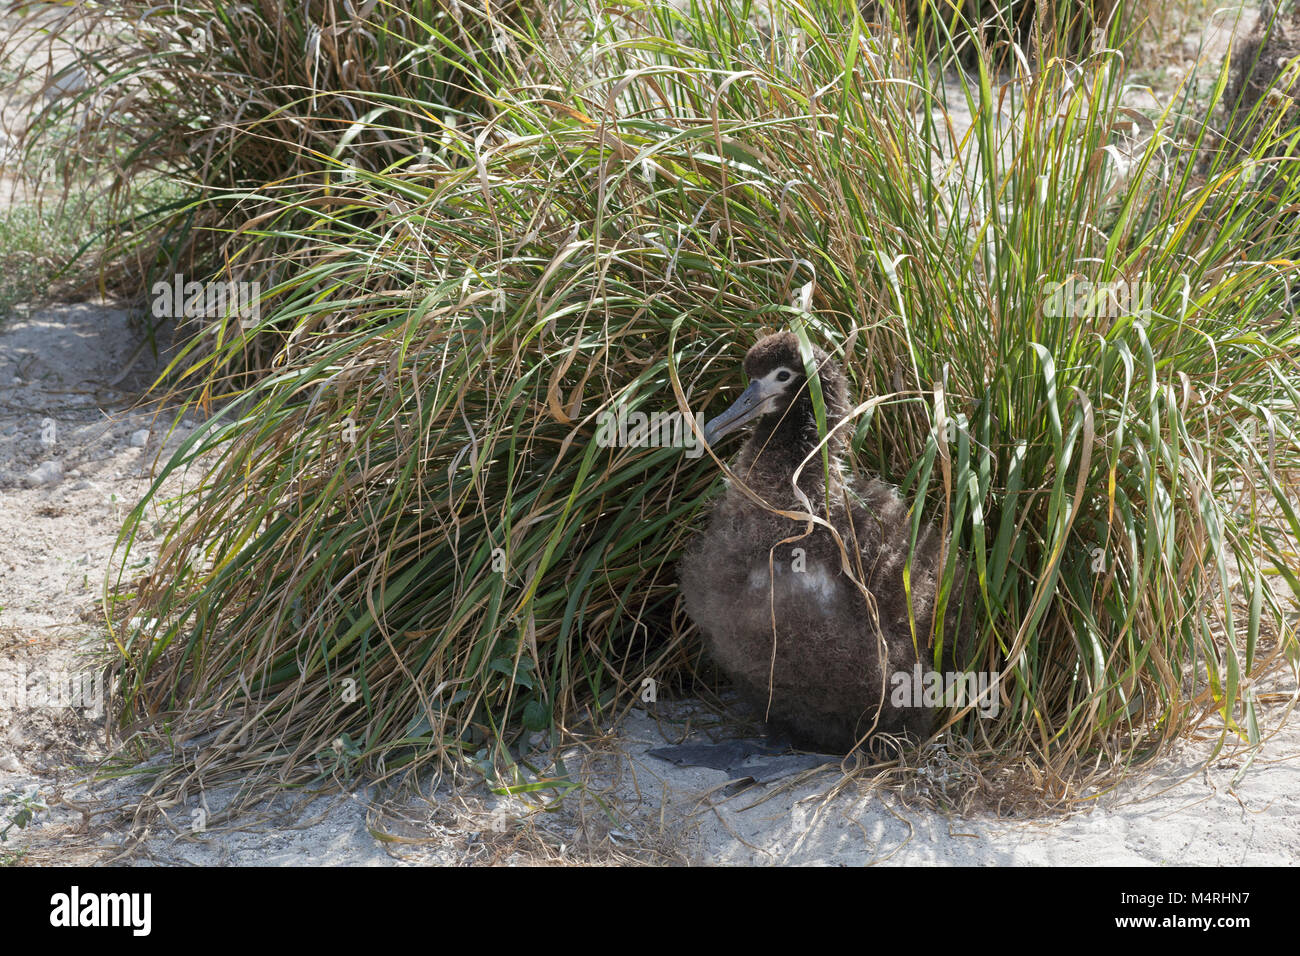 Laysan Albatross chick sheltering from hot sun in Bunch Grass (Eragrostis variabilis), a native species planted Stock Photo